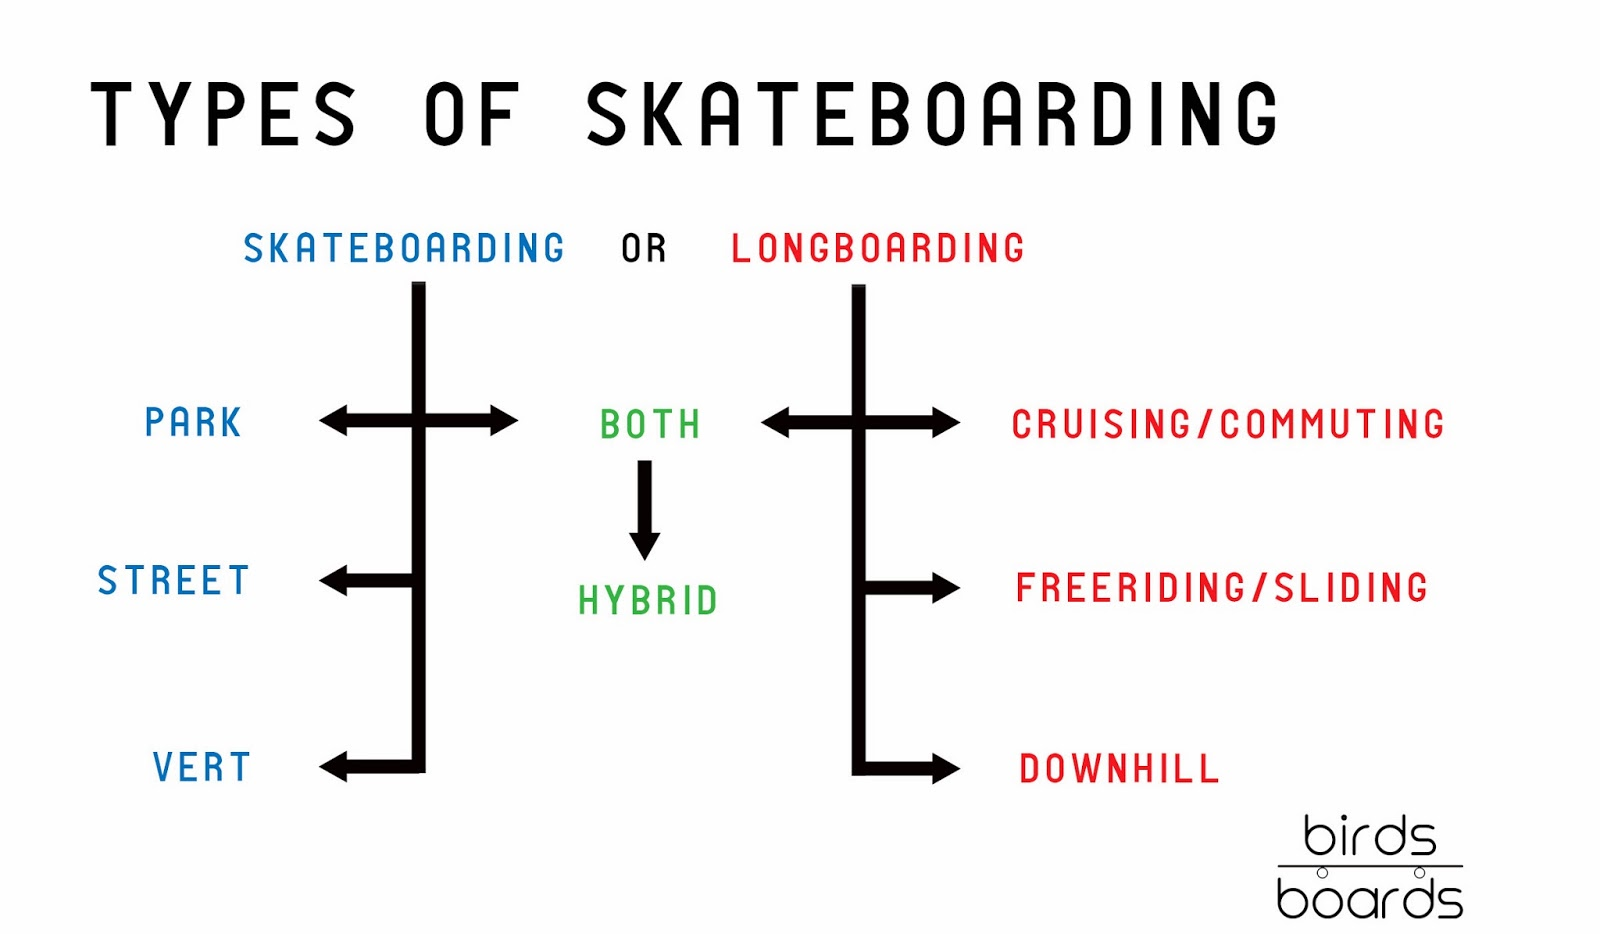 birdsonboards: Chick Tips: Buying Your First Deck